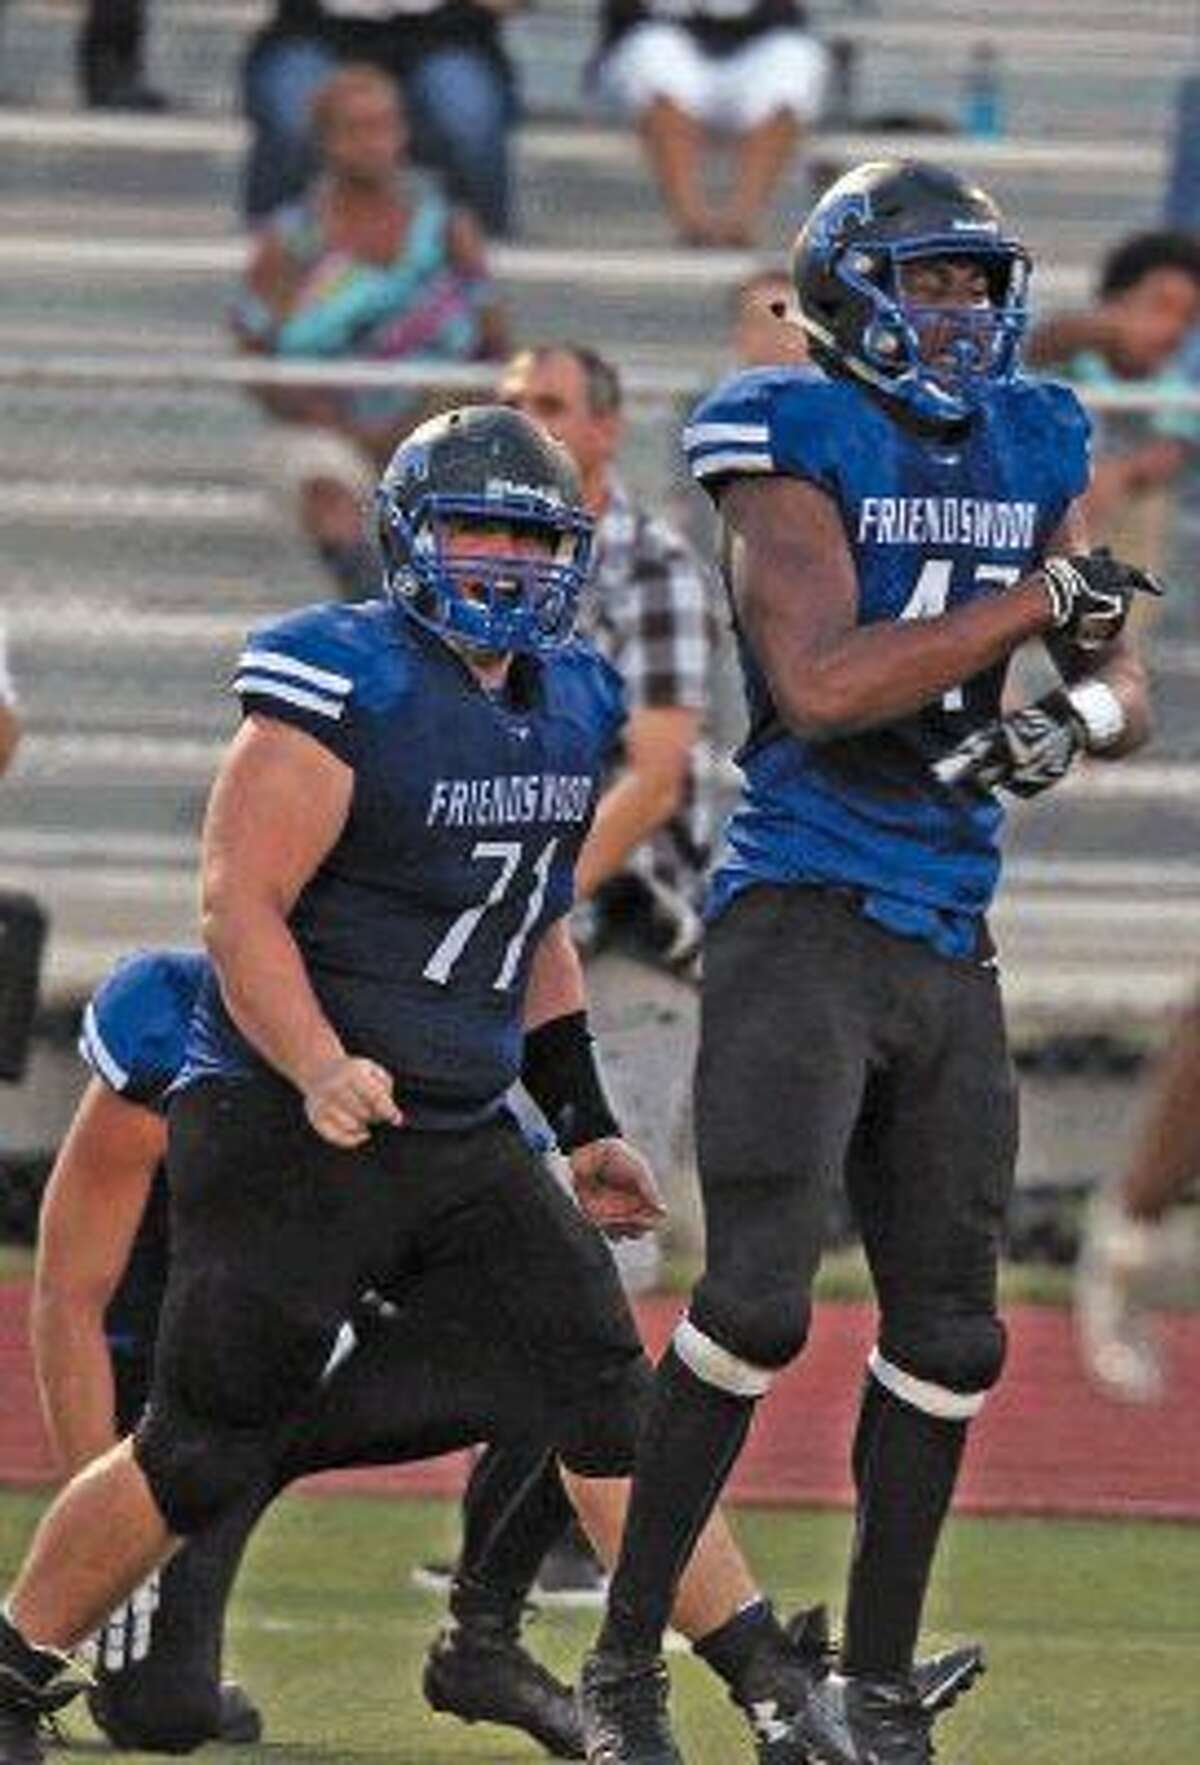 Friendswood's Ian Jones (71) celebrates after teammate Ty Shelby (47) sacked the Texas City quarterback Friday night.